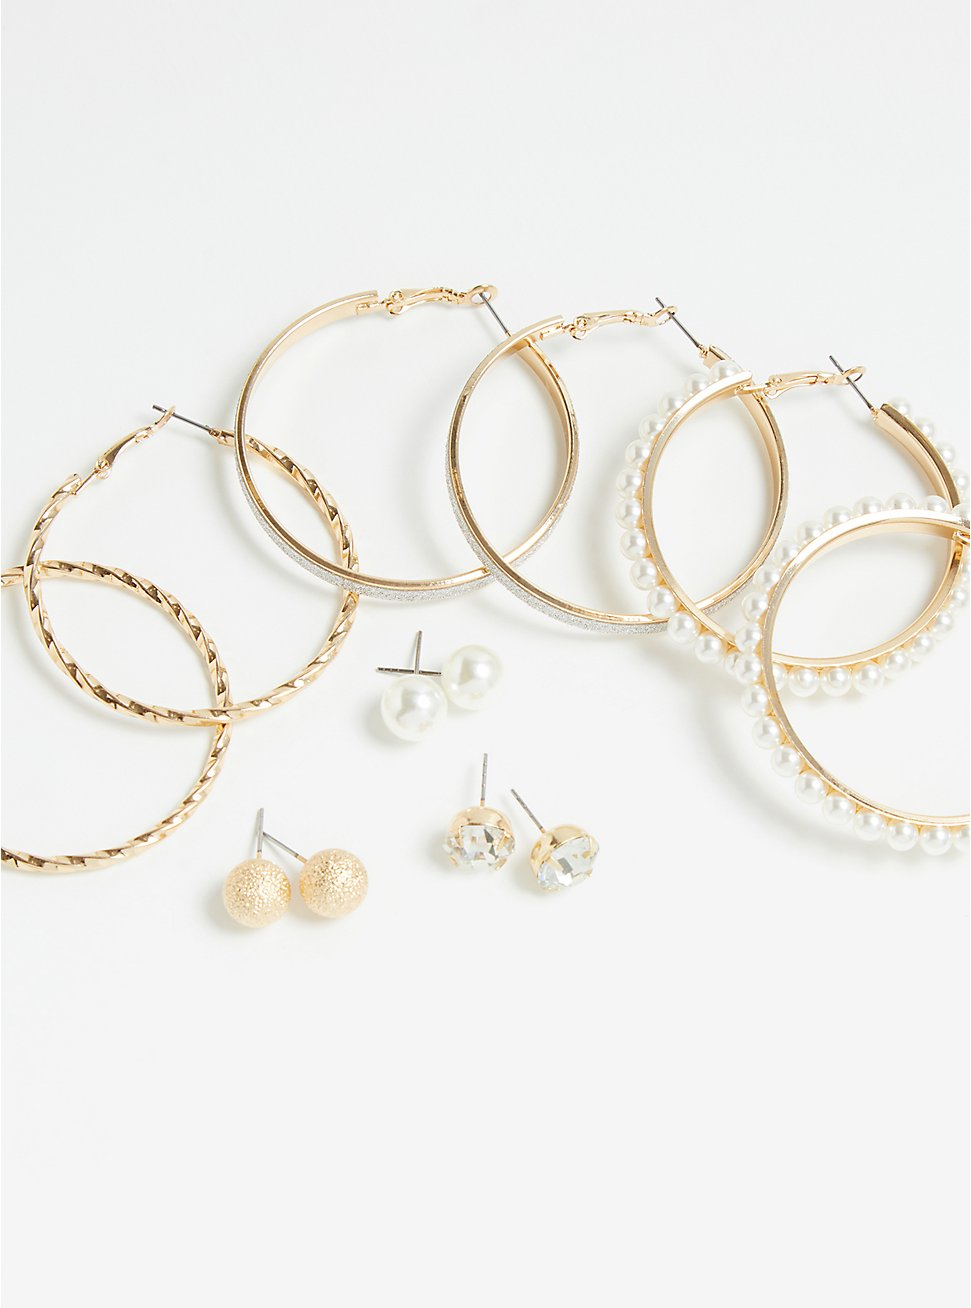 Plus Size Pearl and Gold-Tone Stud & Hoop Earrings Set - Set Of 6, , hi-res